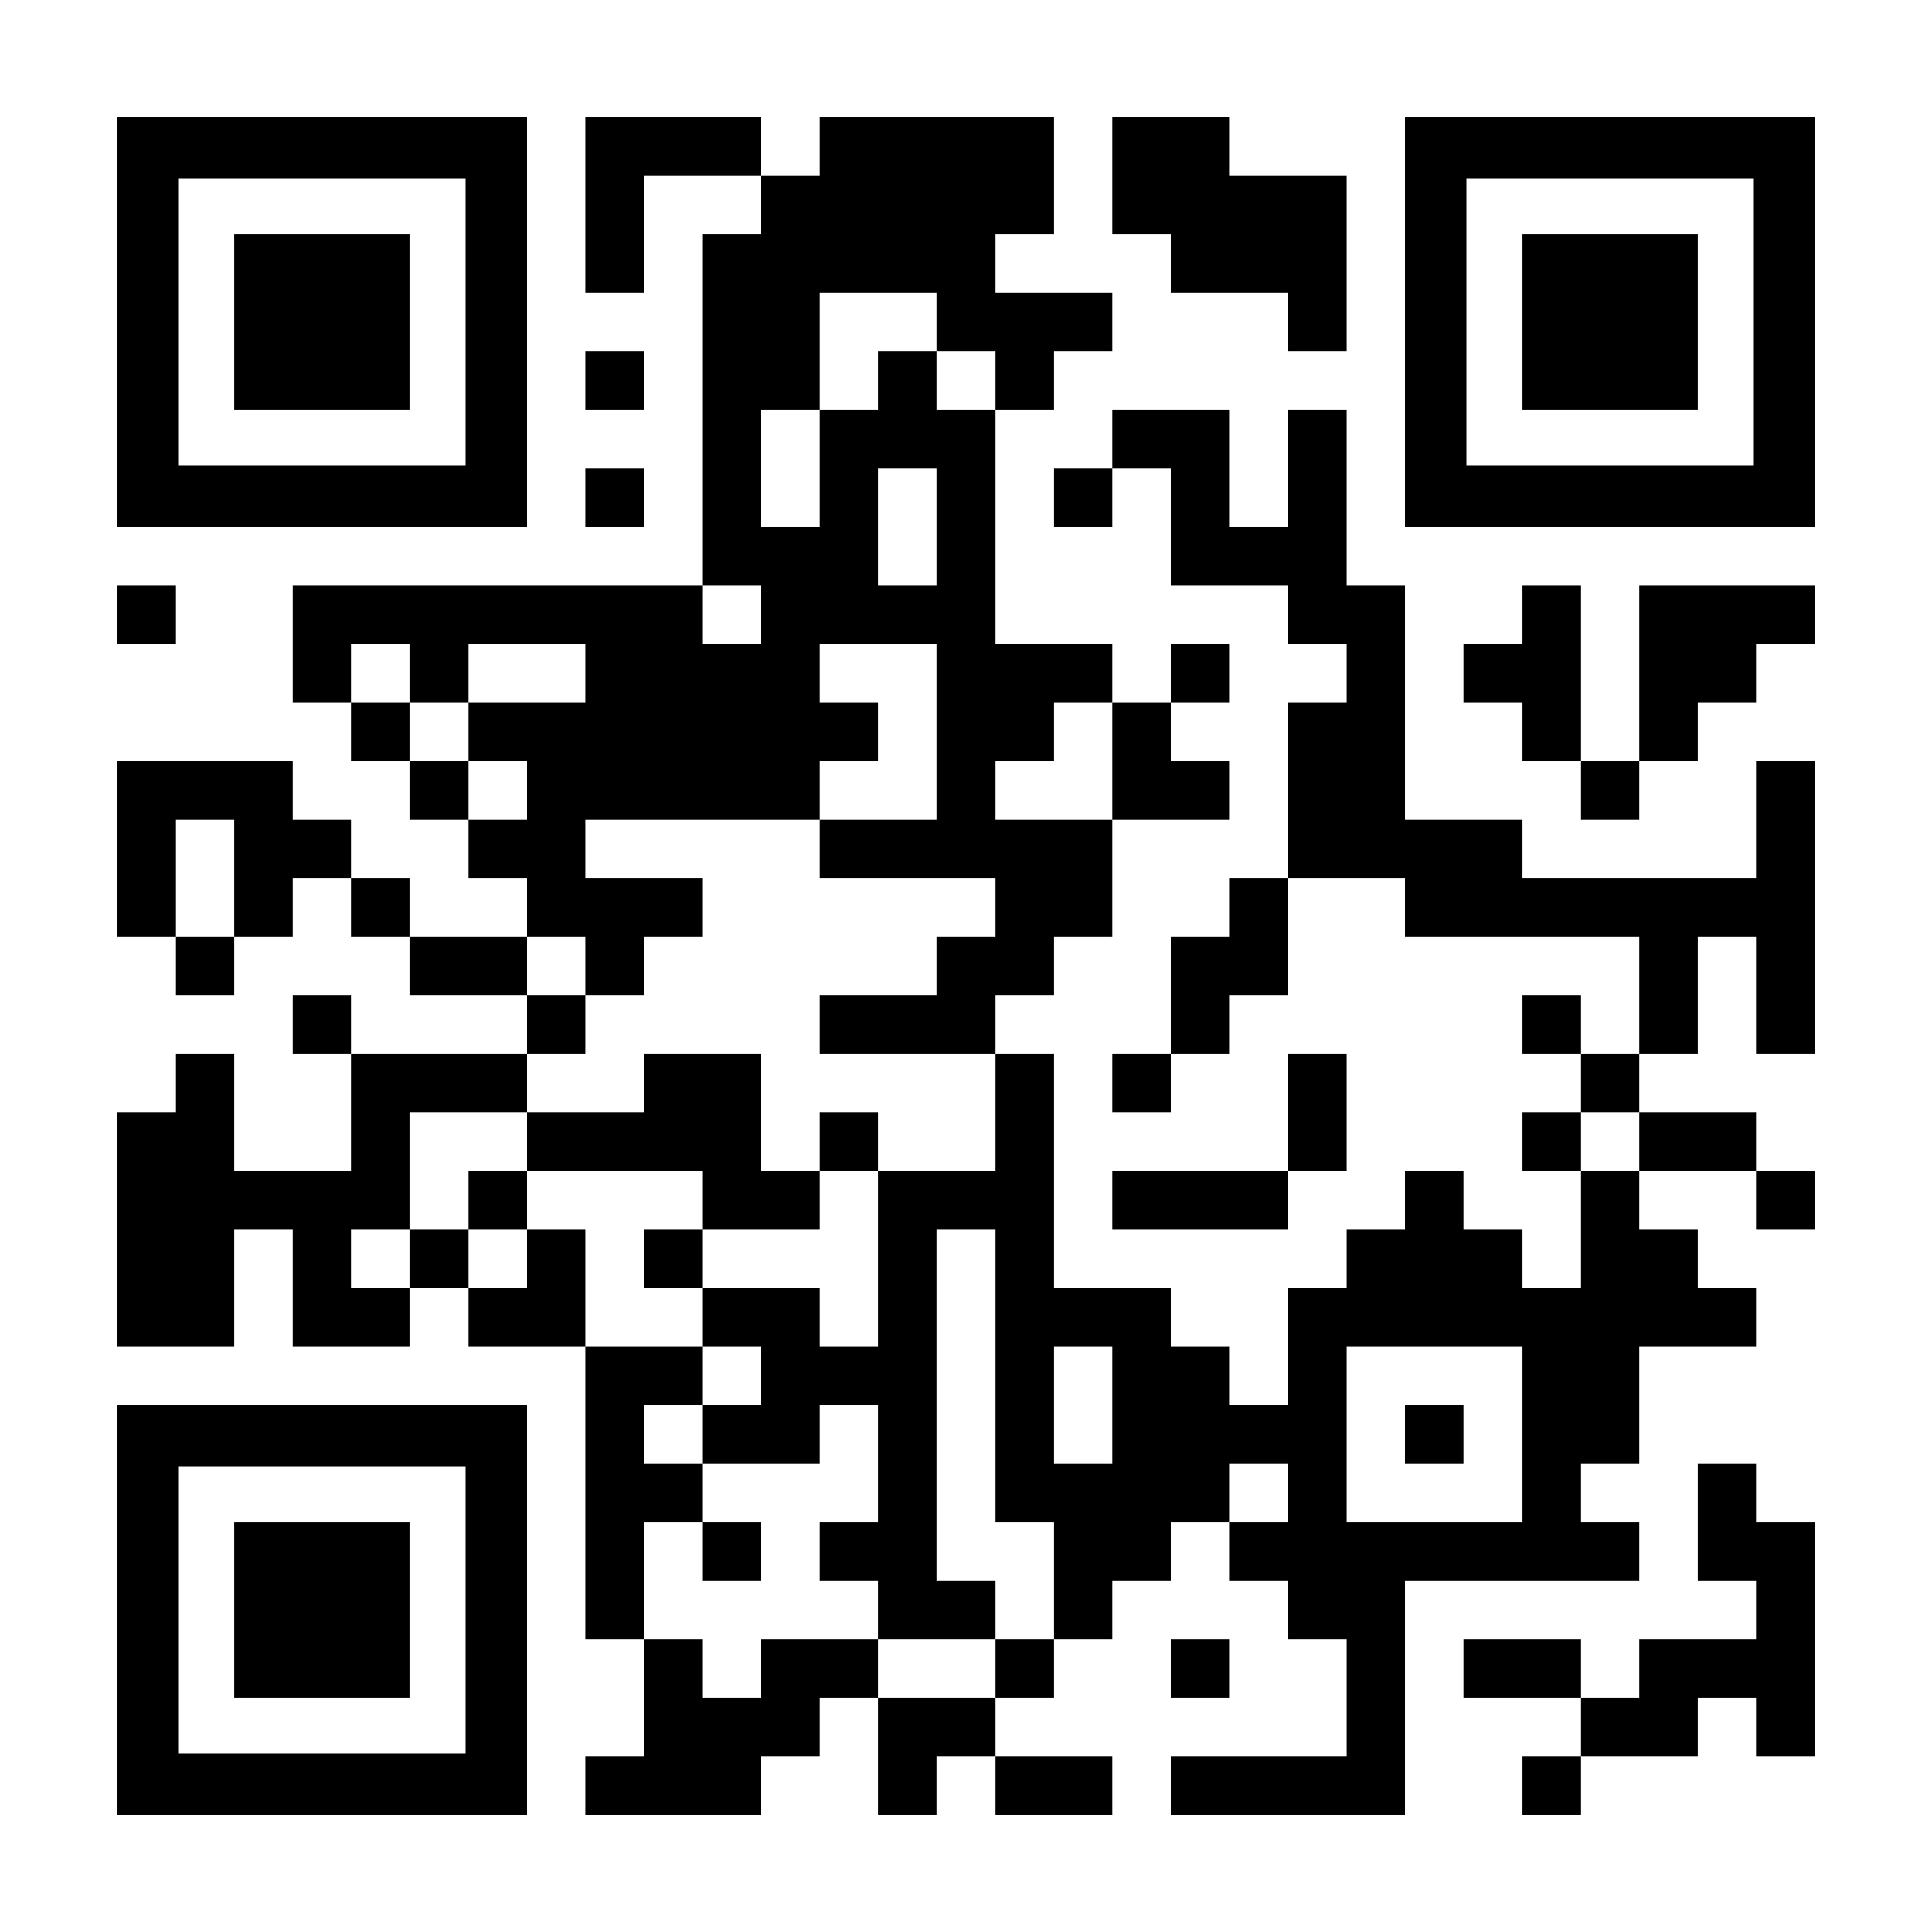 QR code for West student tech help form